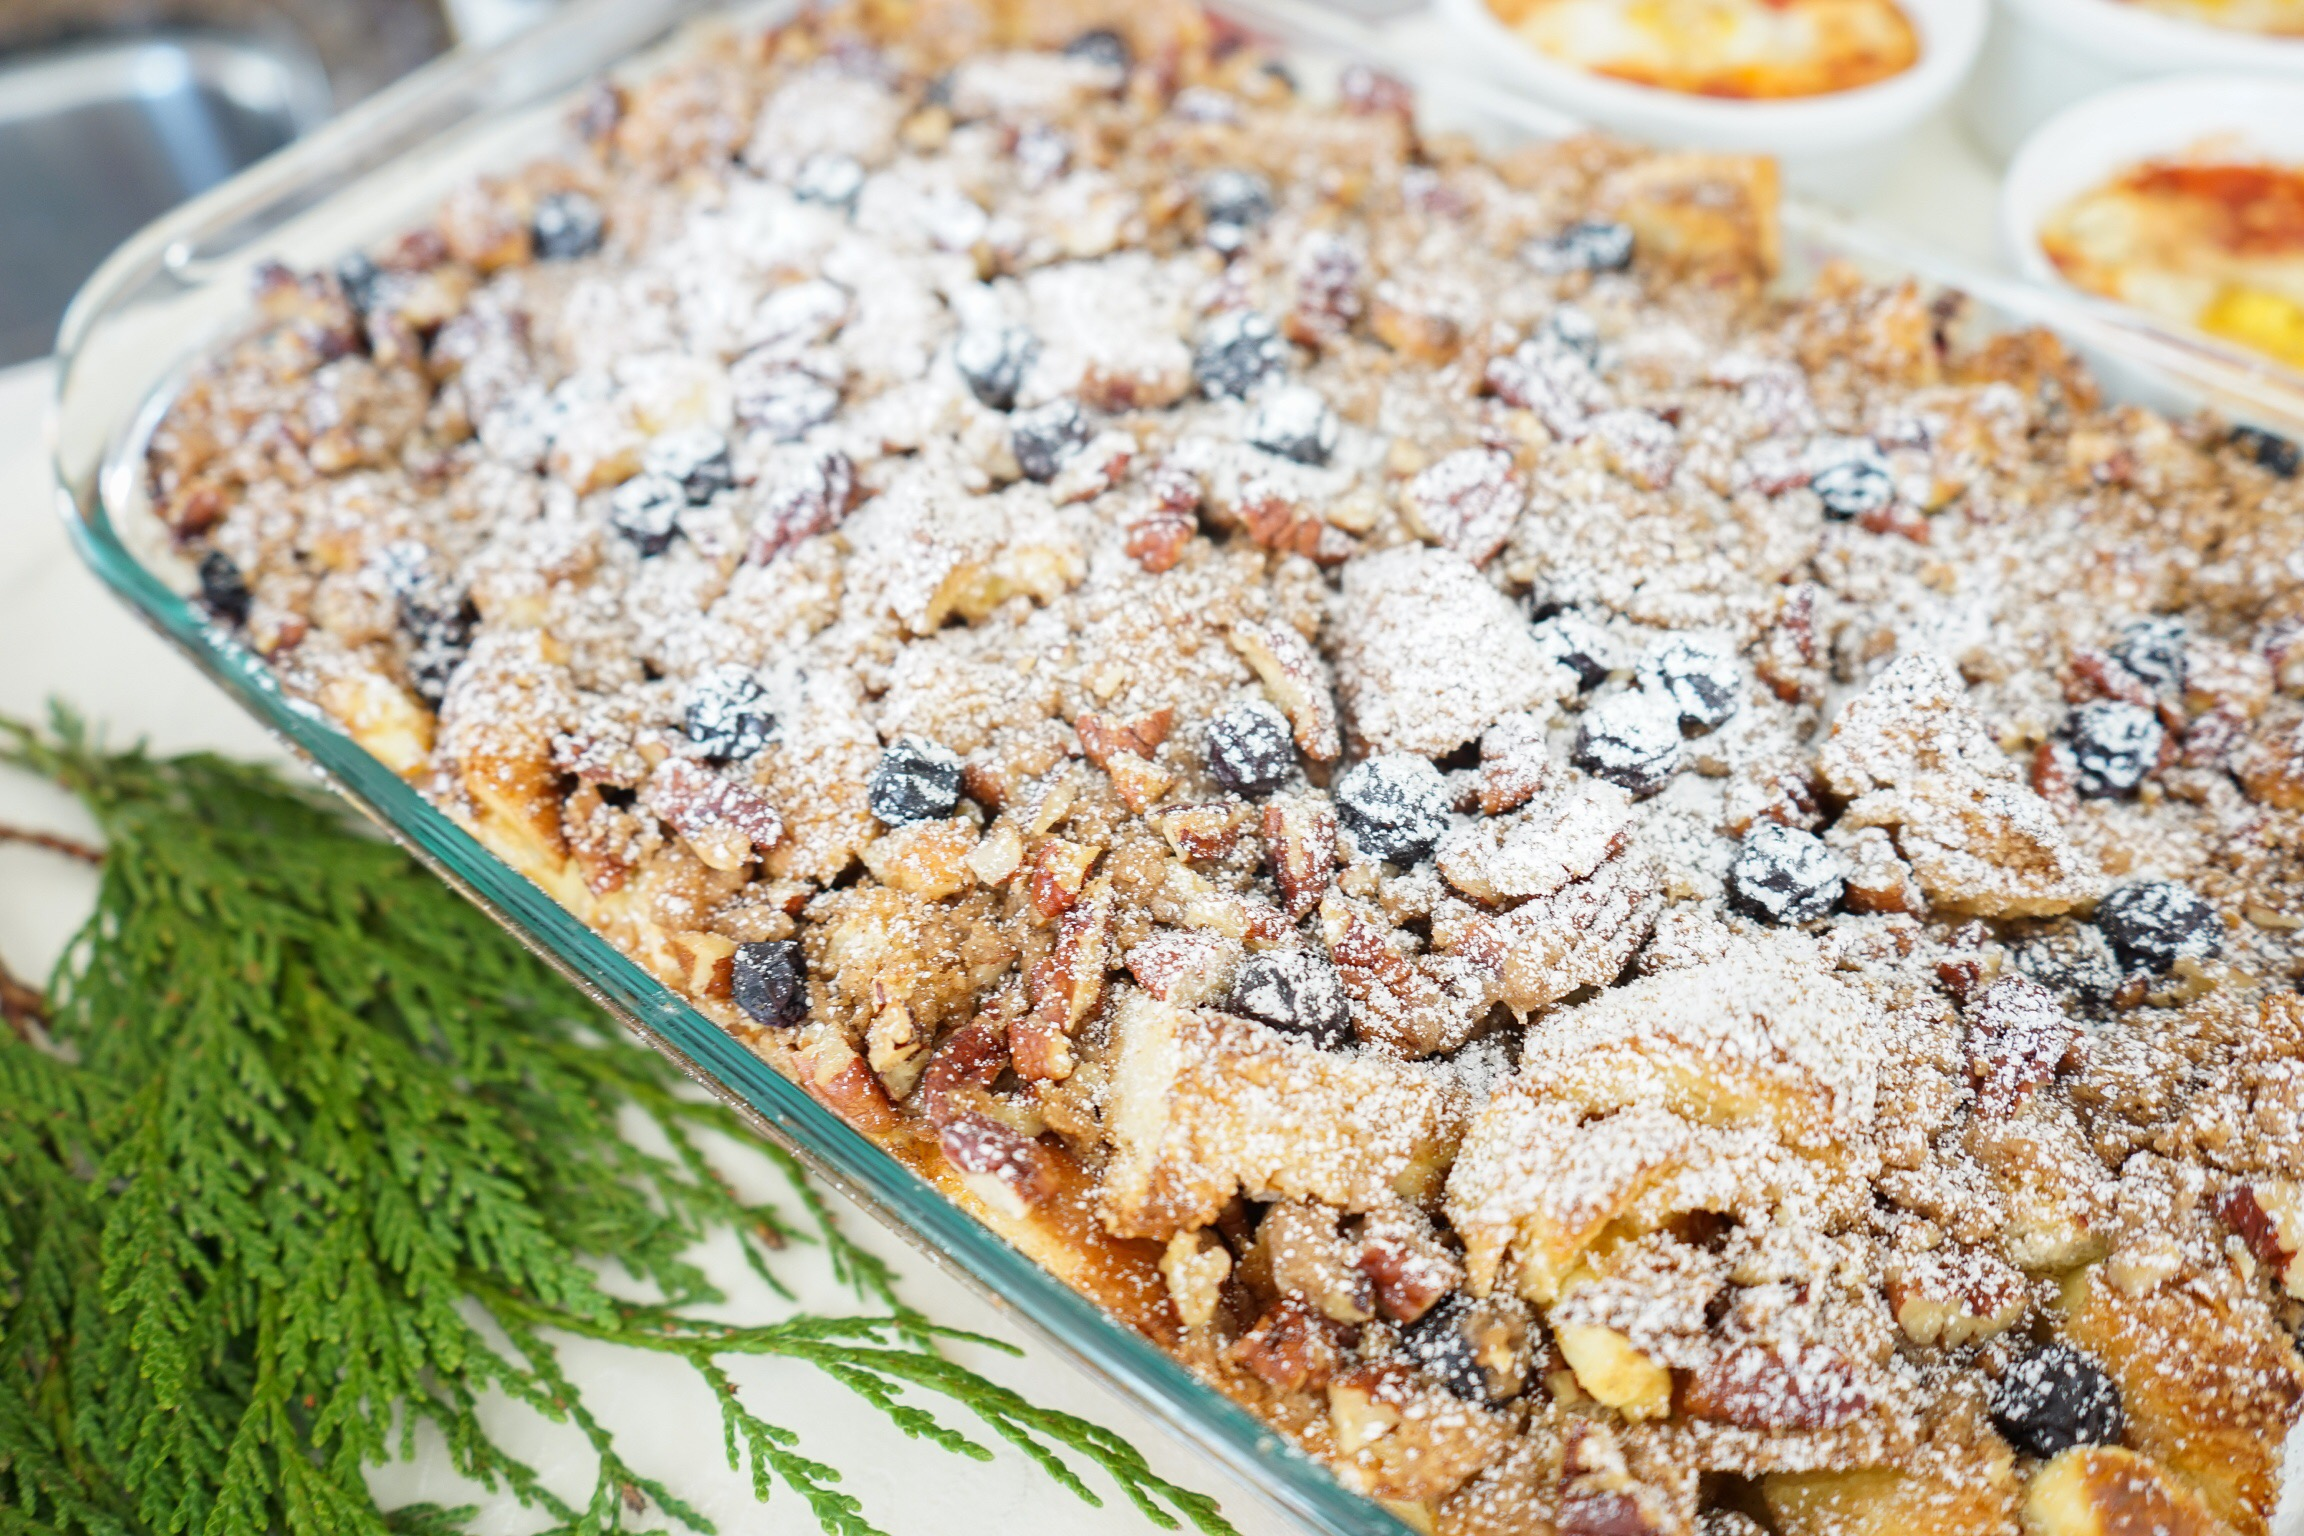 Blueberry Cream Cheese Overnight French Toast with a pecan streusel topping